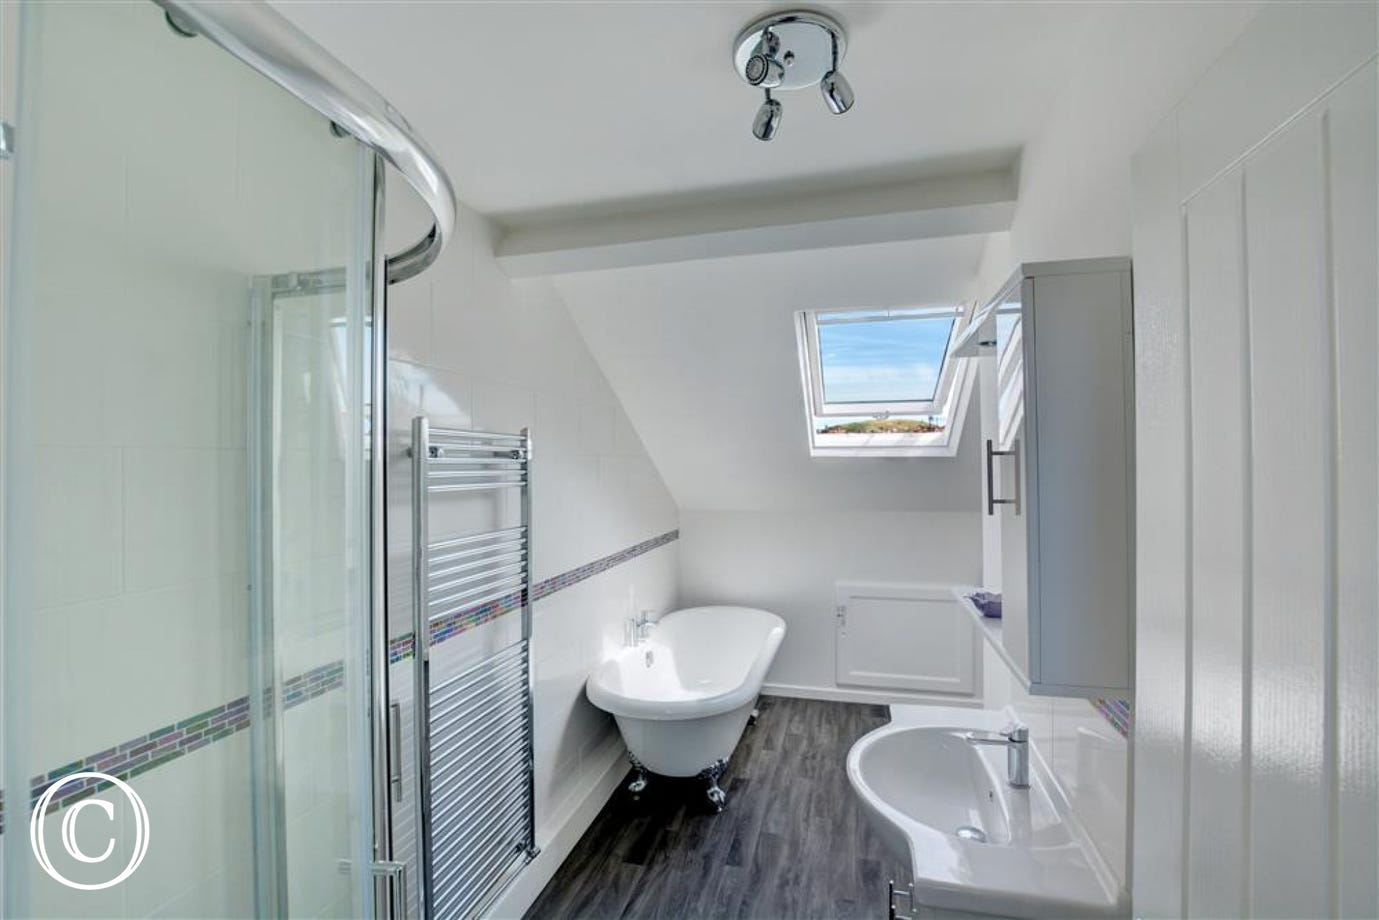 Modern tiled bathroom with bath and seperate shower cubicle